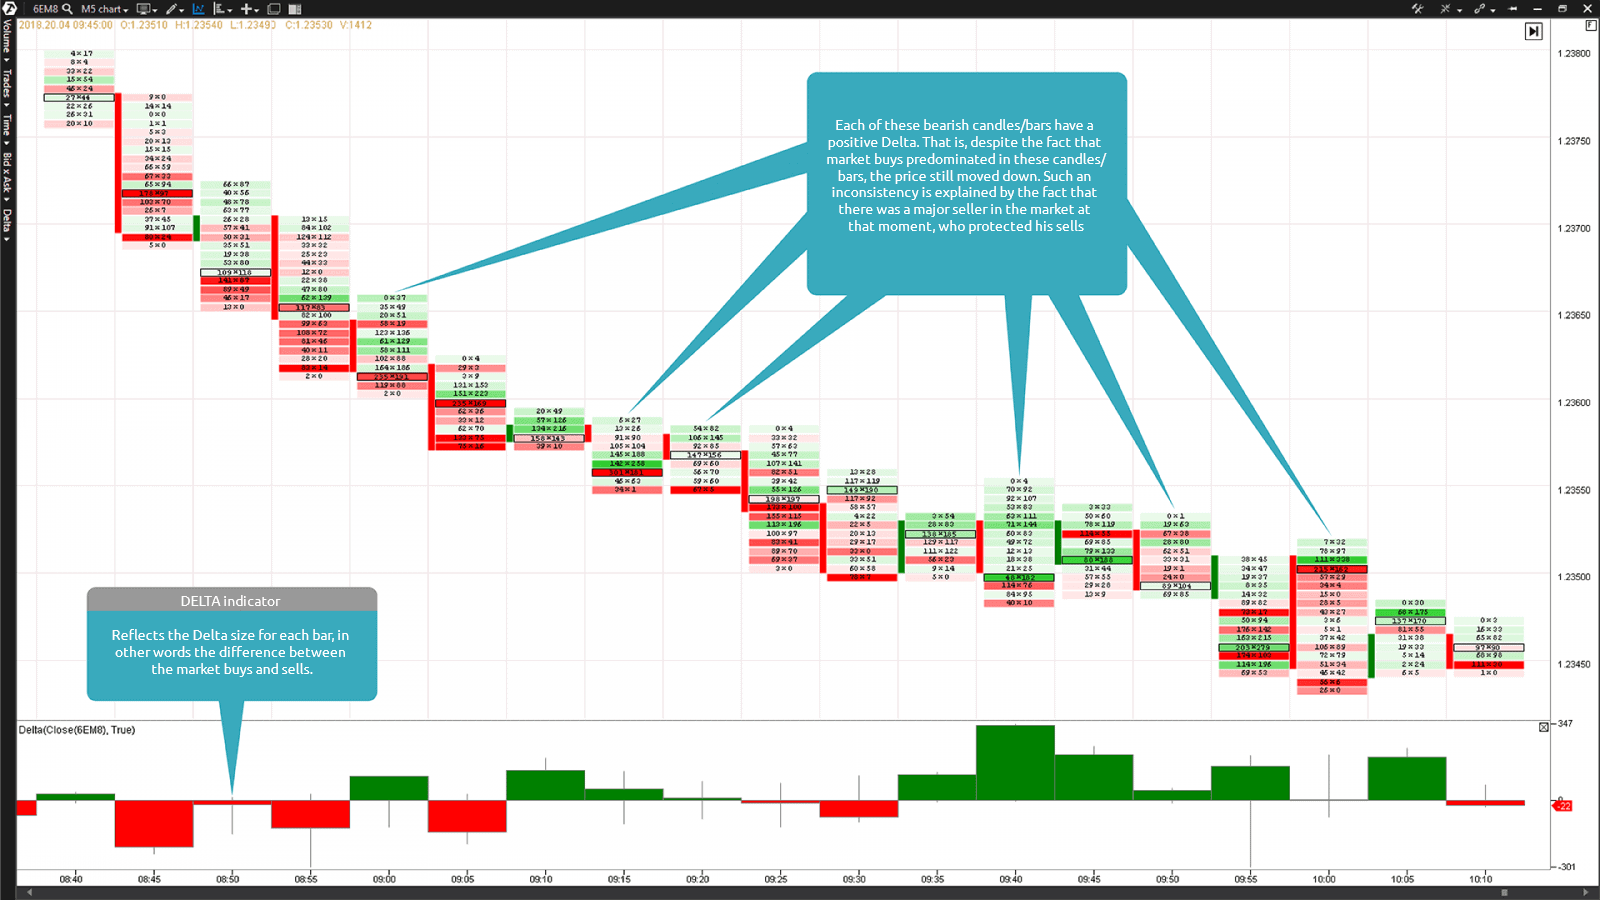 The Bid x Ask Footprint chart and Delta indicator in the lower part of the chart